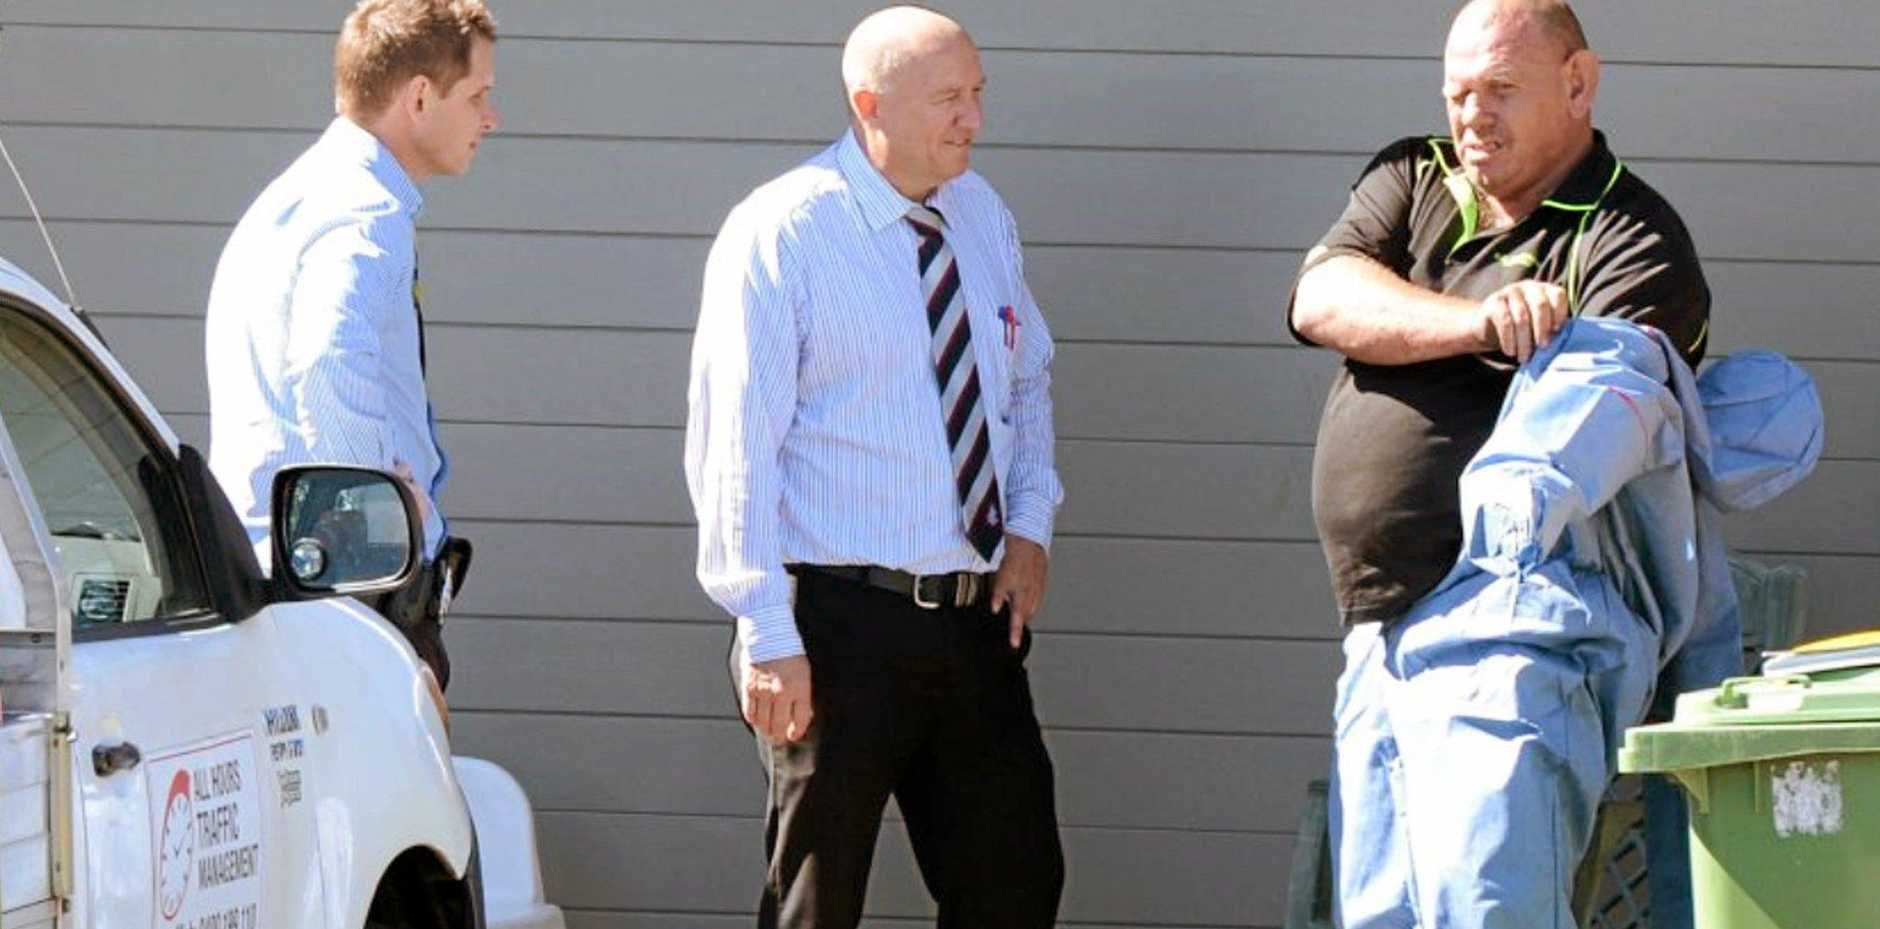 Murder accused Kenneth John Beattie (right) outside the Scottsdale St address.